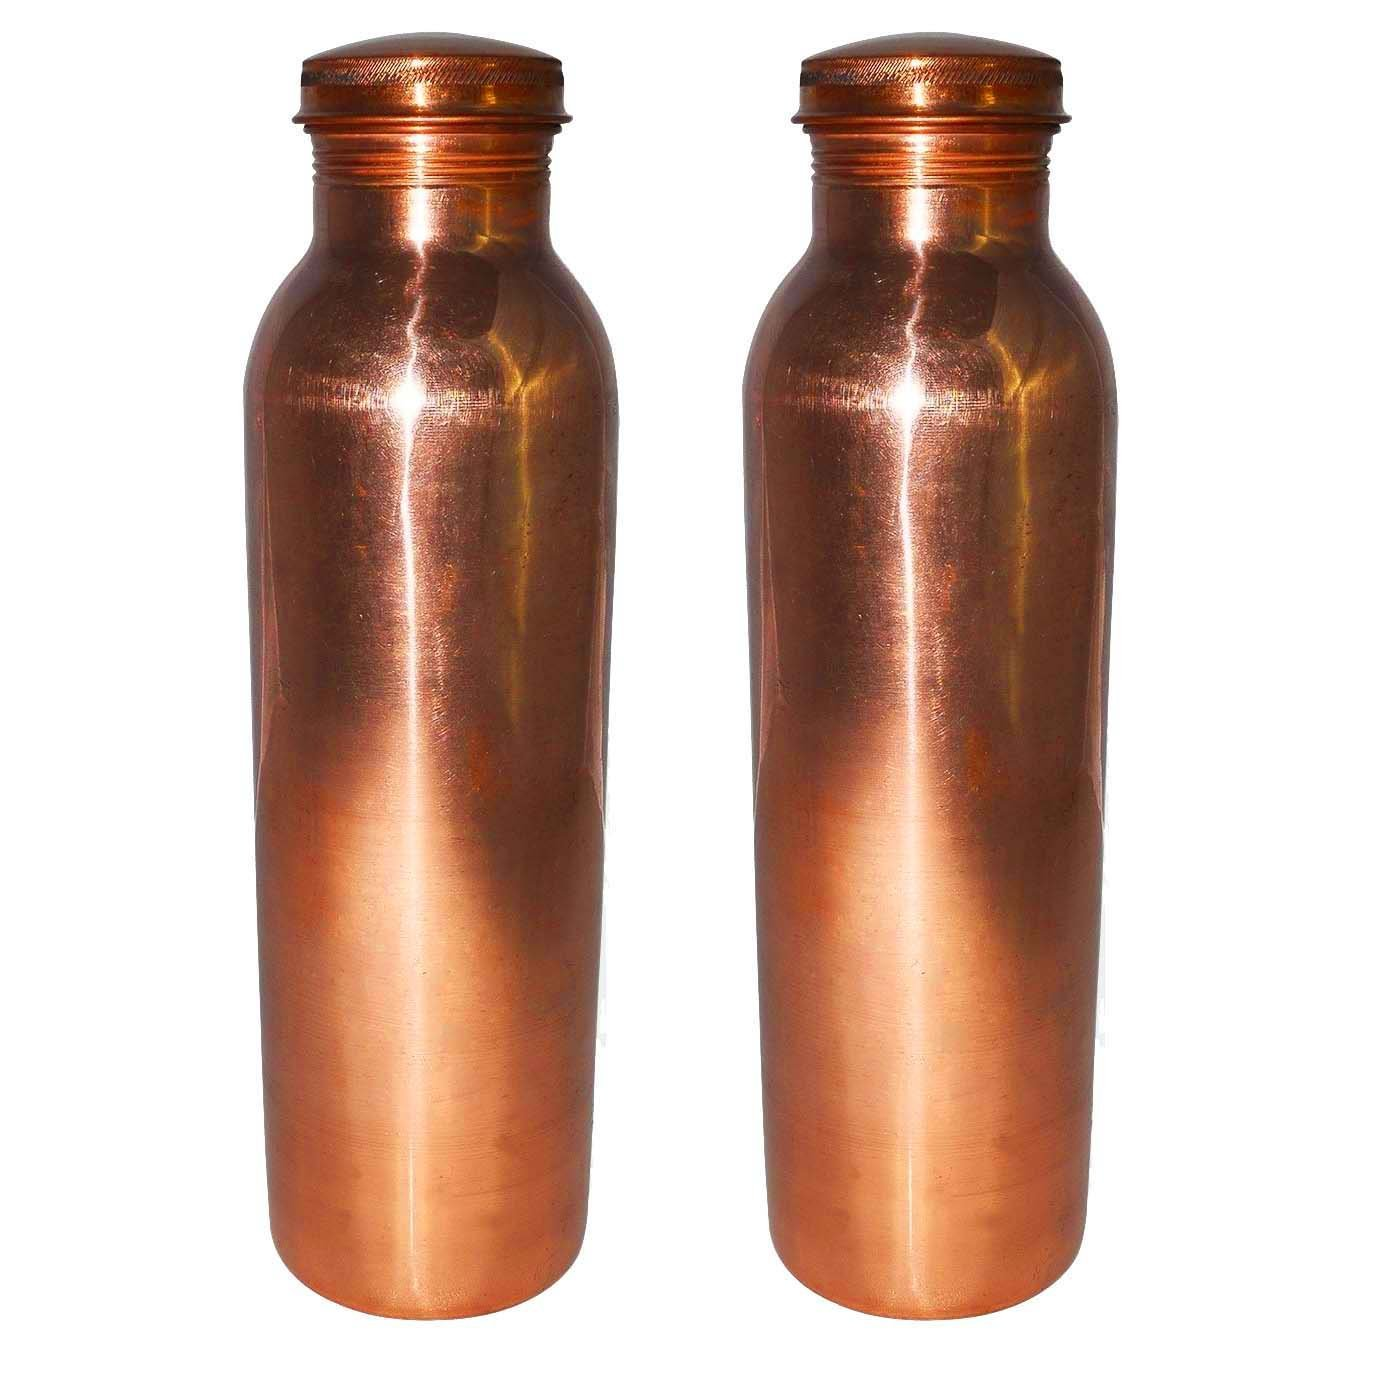 AsiaCraft 1 Litre Capacity Pure Copper Joint Free Leak Proof Bottle for Better Health, Set of 2